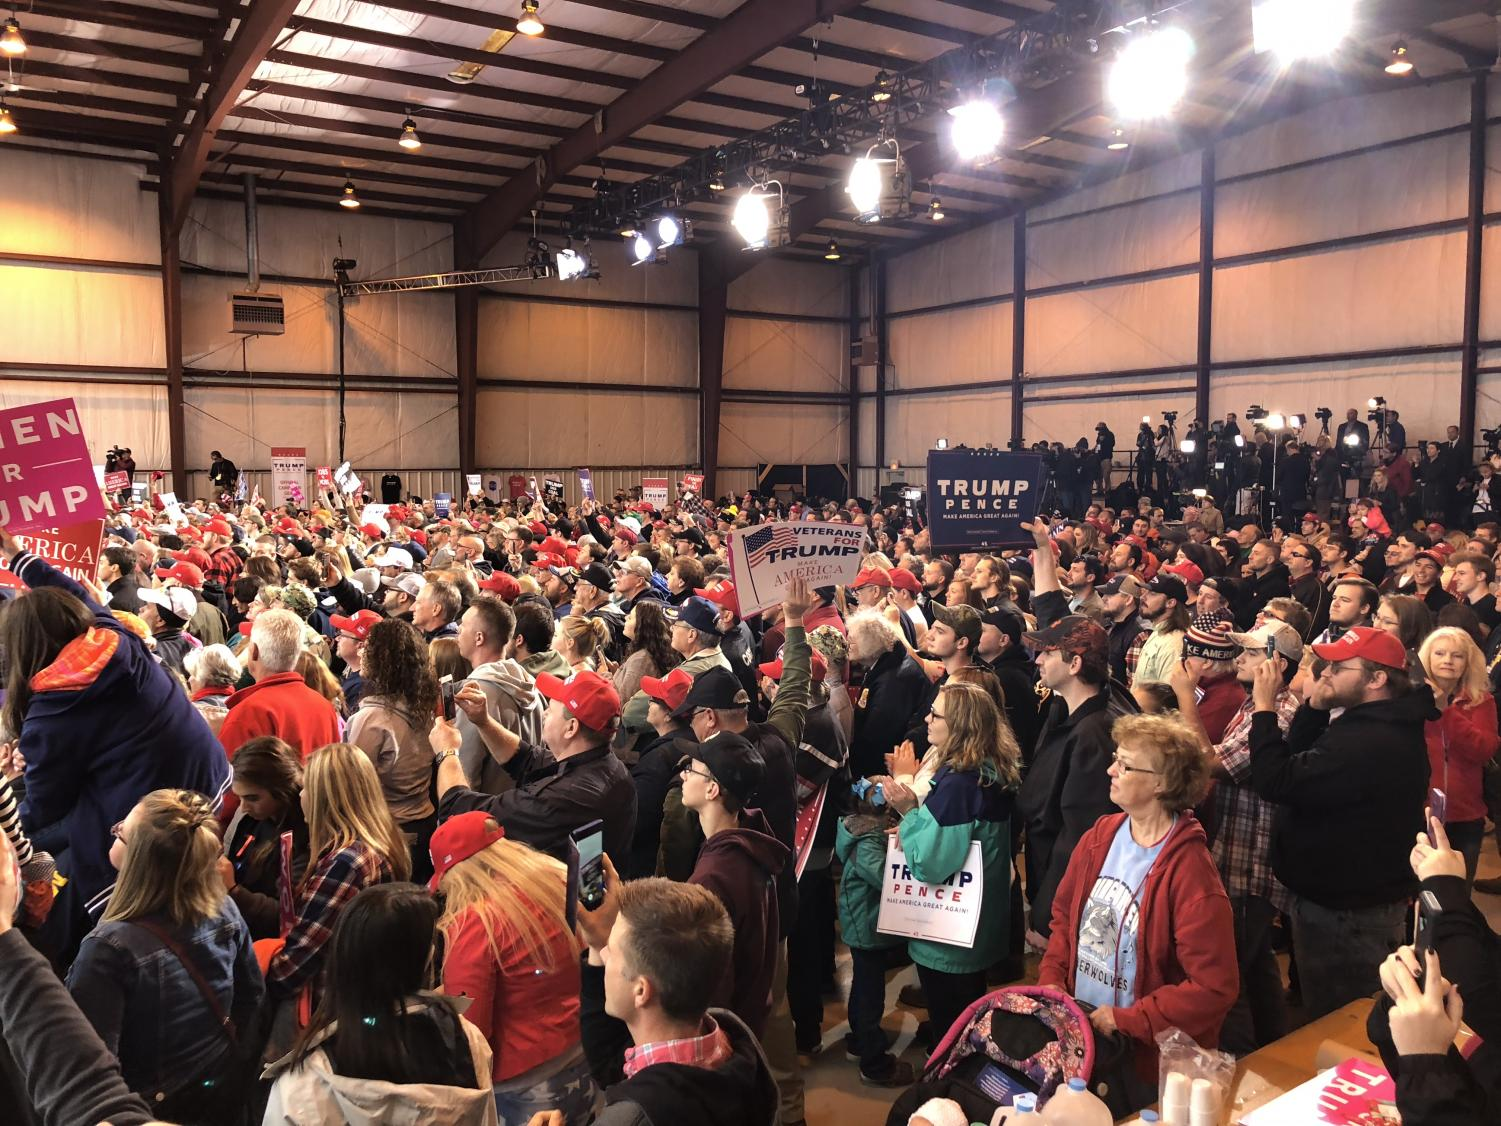 Trump supporters rallied for the president, Friday, Nov. 2 at Huntington Tri- State Airport's Hangar 3, where he discussed issues like the economy, immigration and the upcoming mid-term elections.